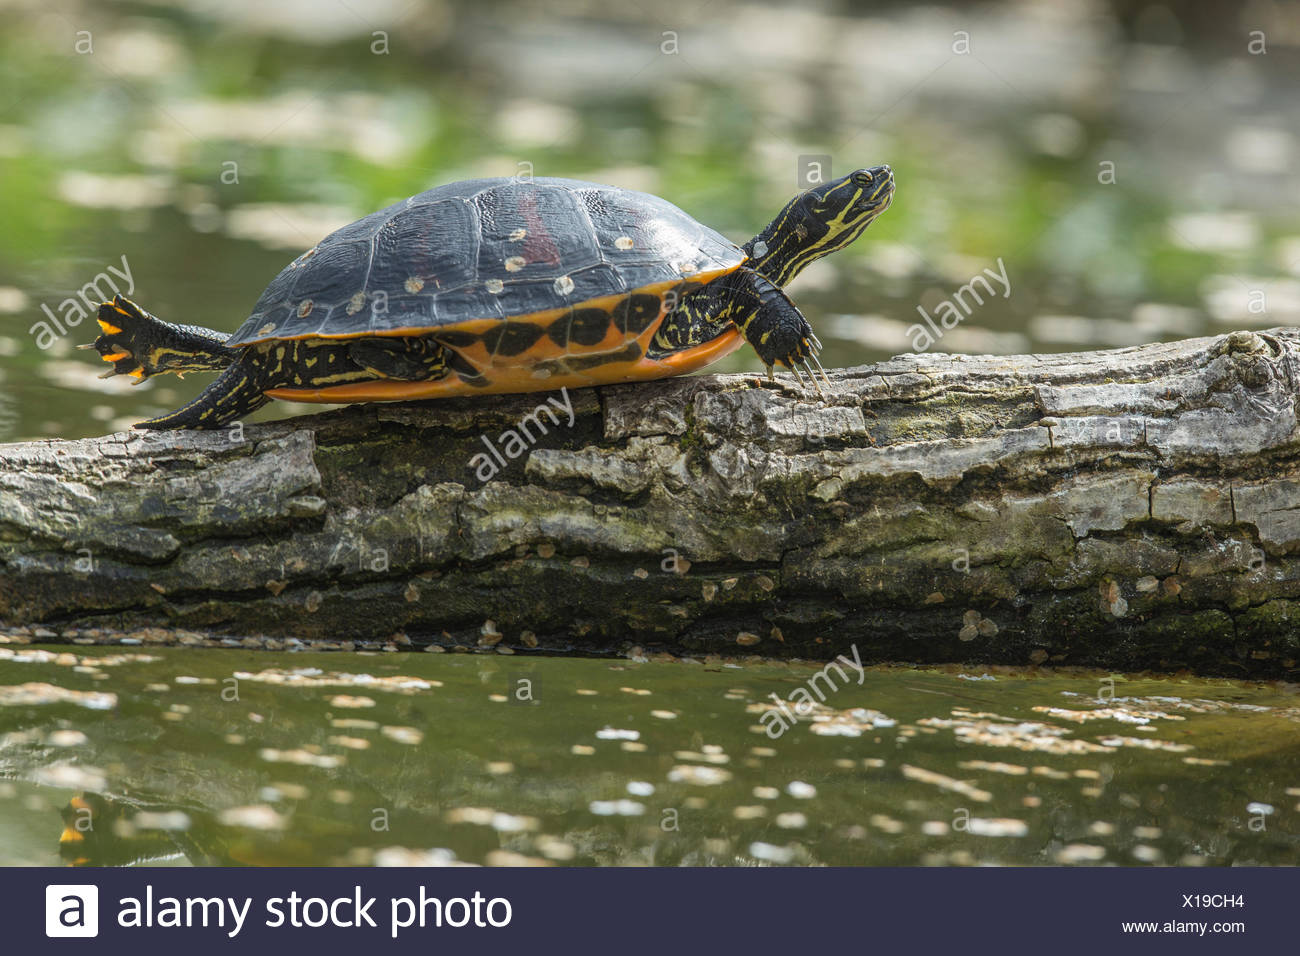 Florida Red-bellied Cooter , sun basking on tree trunk in pond, (Pseudemys nelsoni) - Stock Image